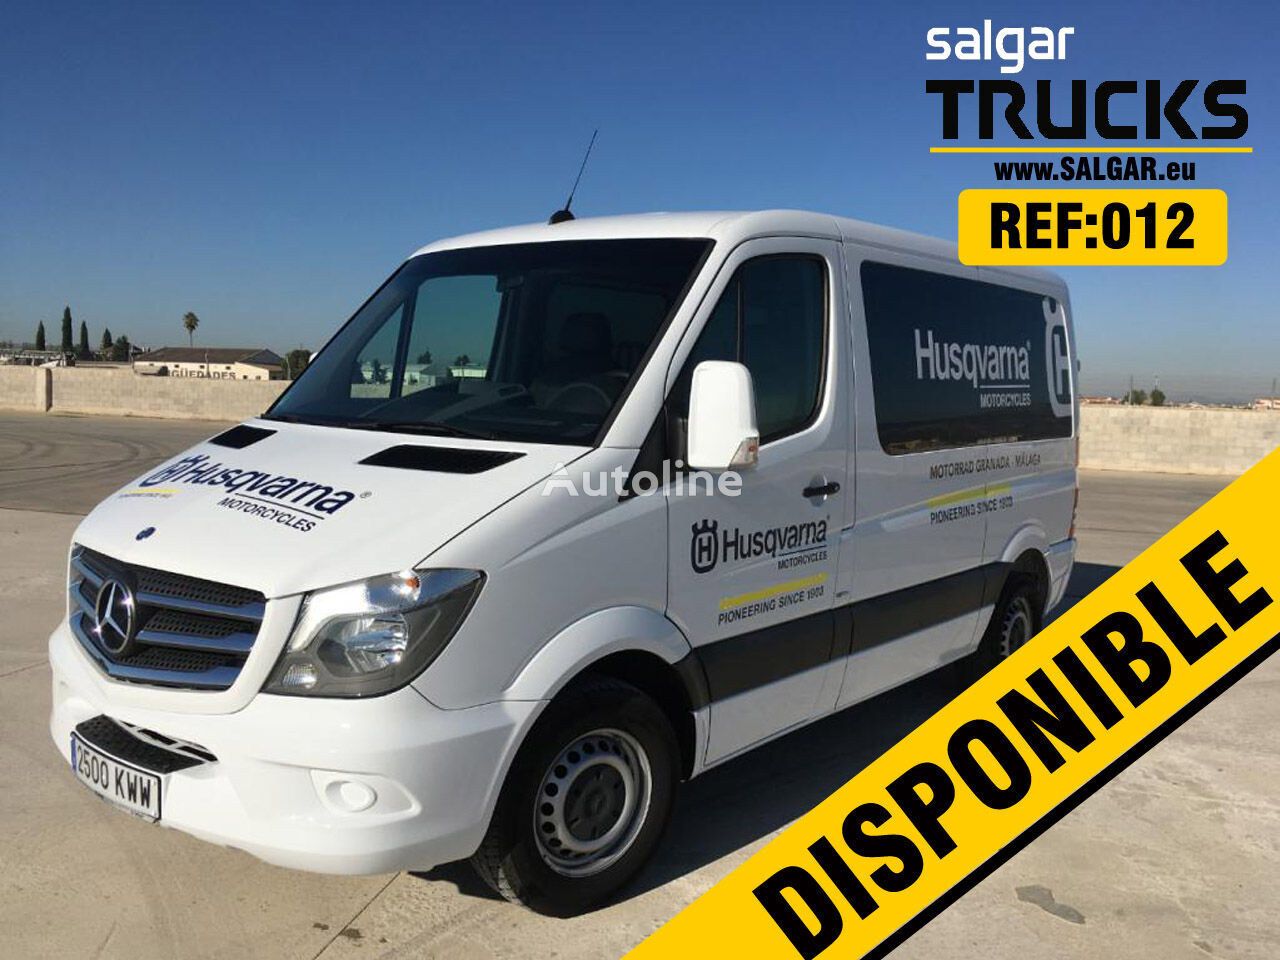 MERCEDES-BENZ SPRINTER 316 CDI closed box van